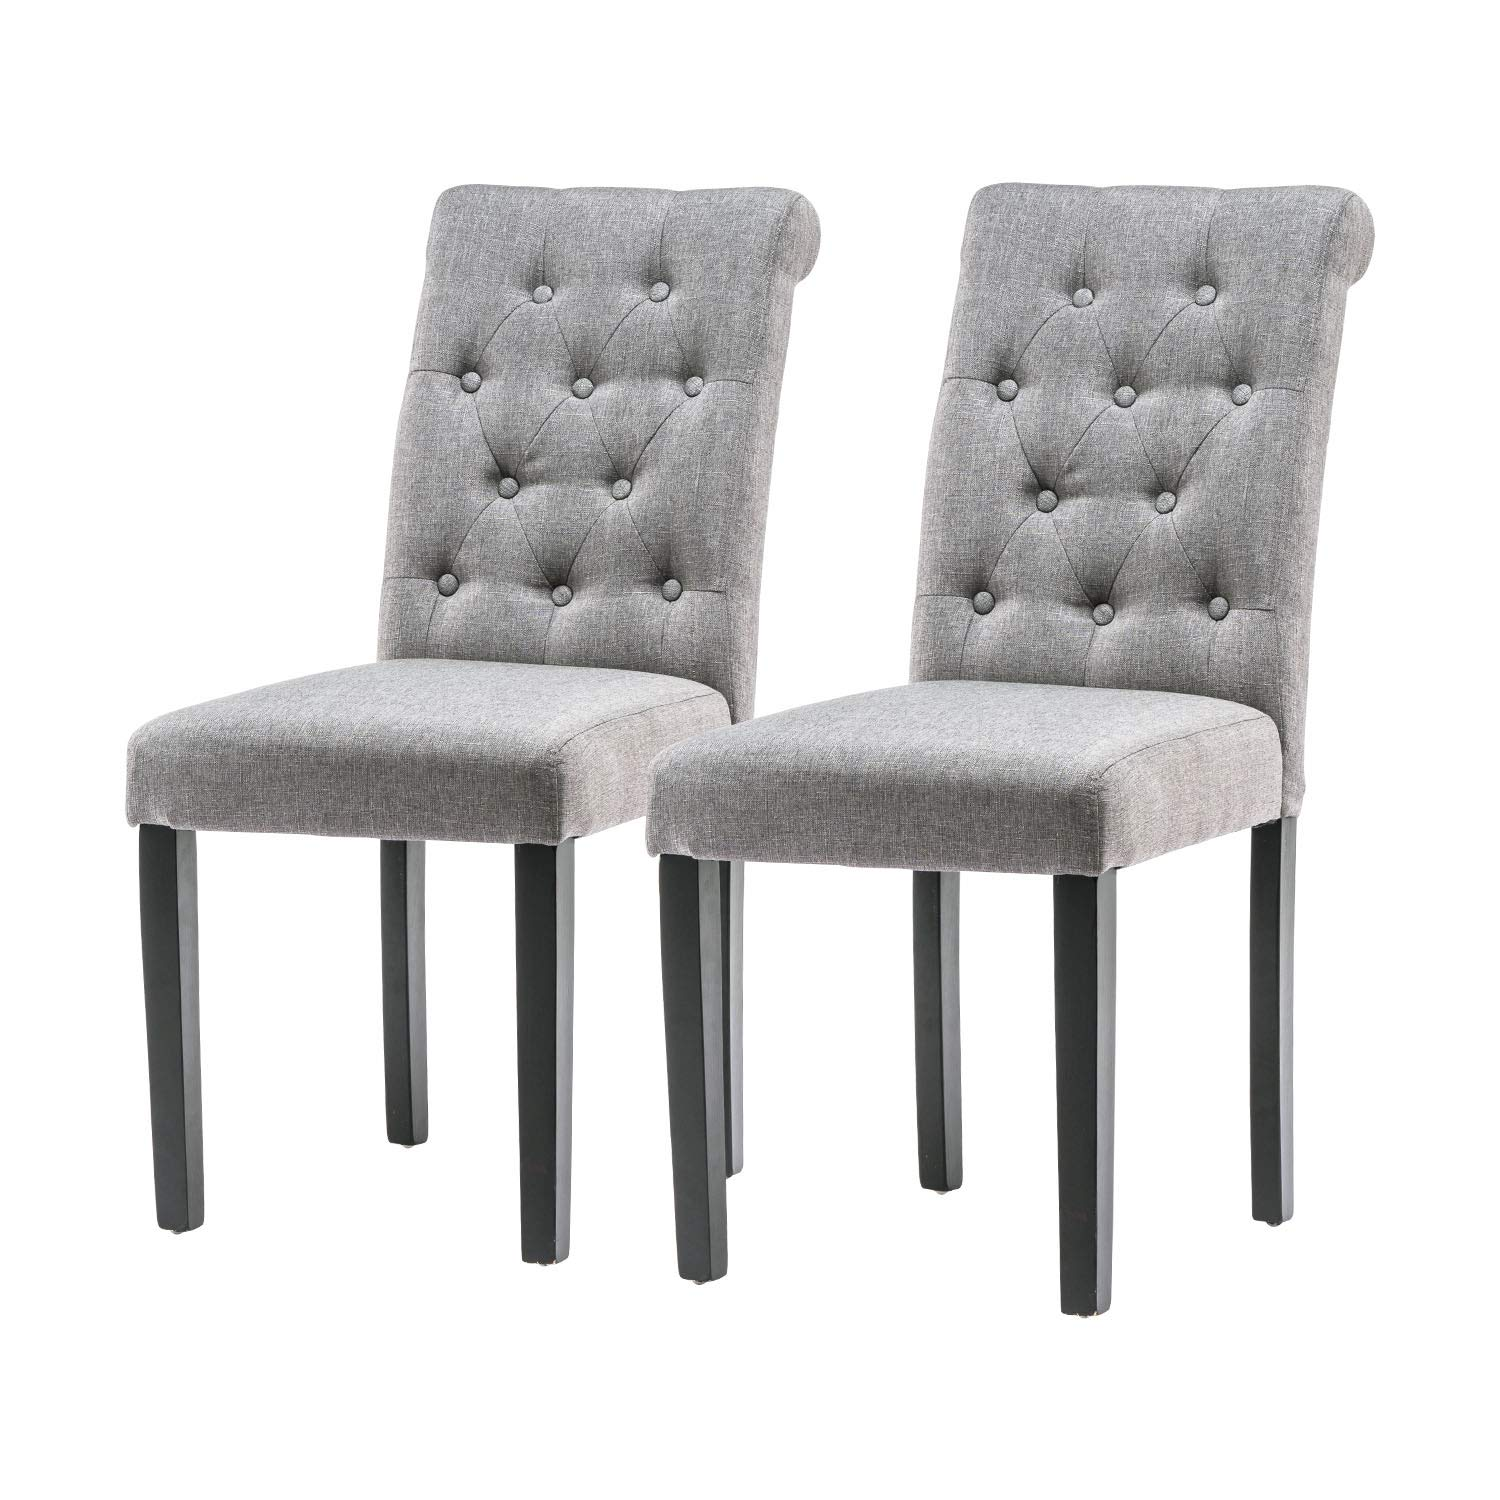 YEEFY Habit Solid Wood Tufted Parsons Dining Chair (Set of 2) (Gray) by YEEFY